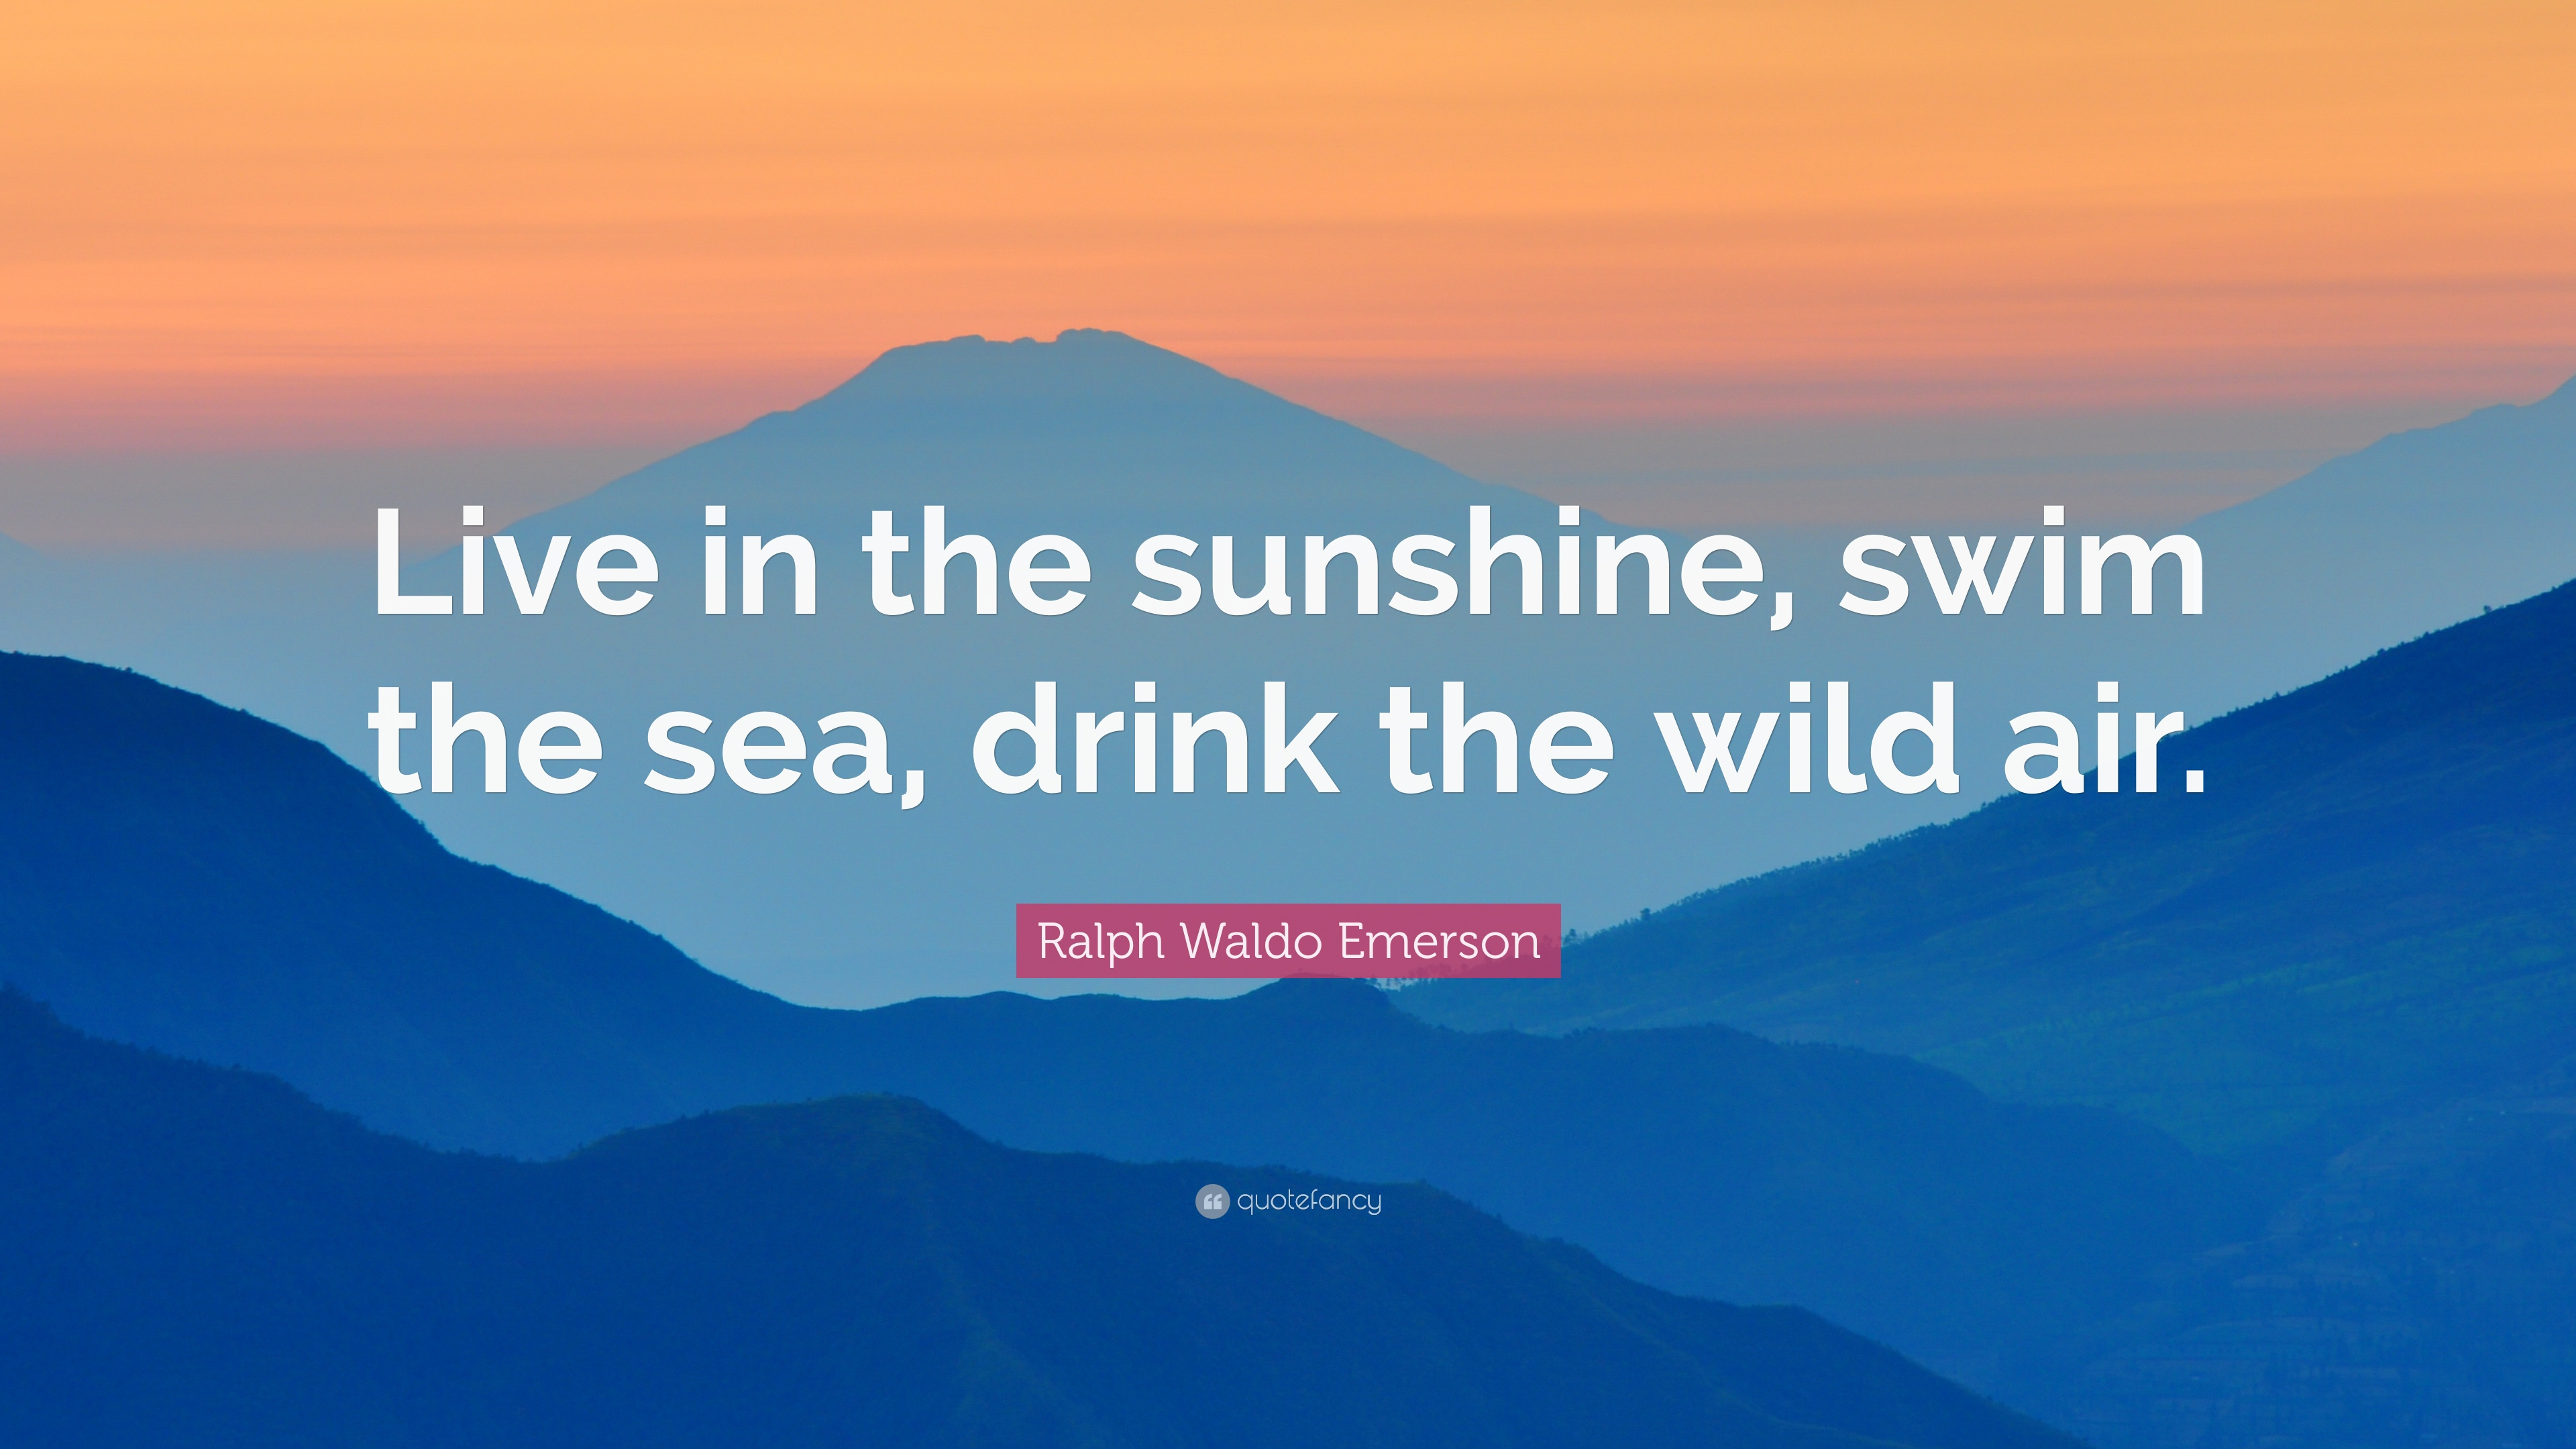 Ralph Waldo Emerson Quotes (100 Wallpapers)